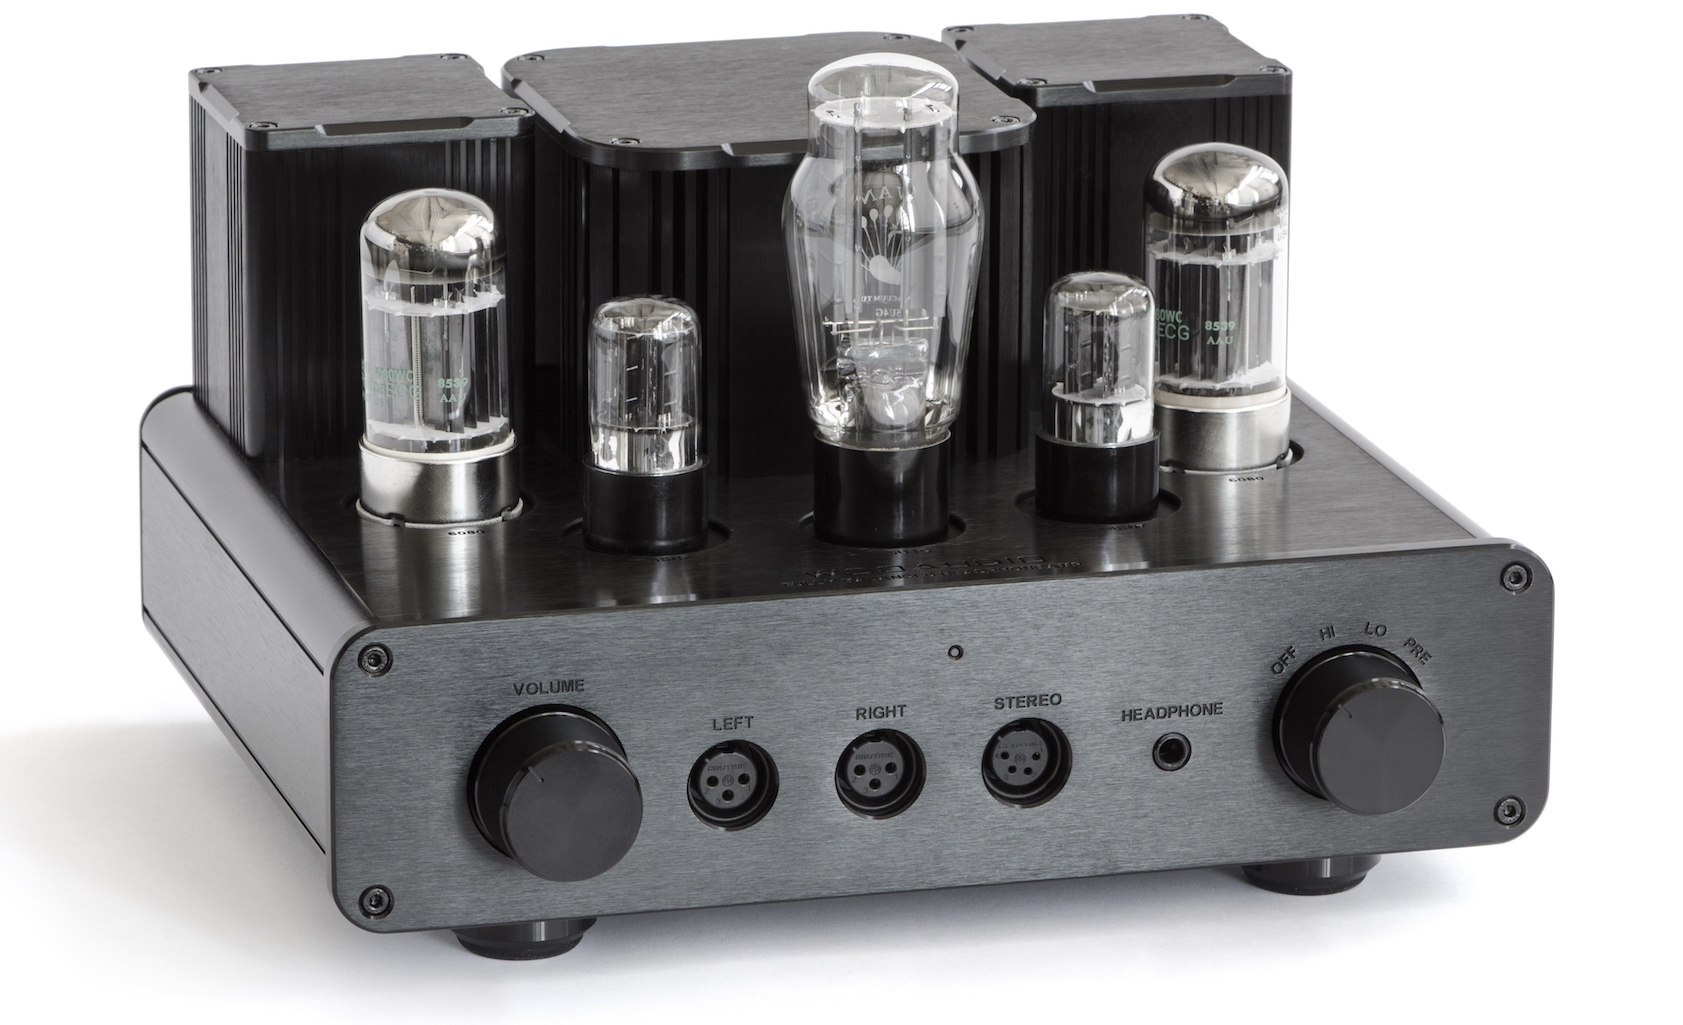 woo-audio-wa22-balanced-headphone-amplifier-black-highend-audiophile-vacuum-tube-headfi-274b-6sn7-6080-5998-tubes-preamplifier-fully-balanced